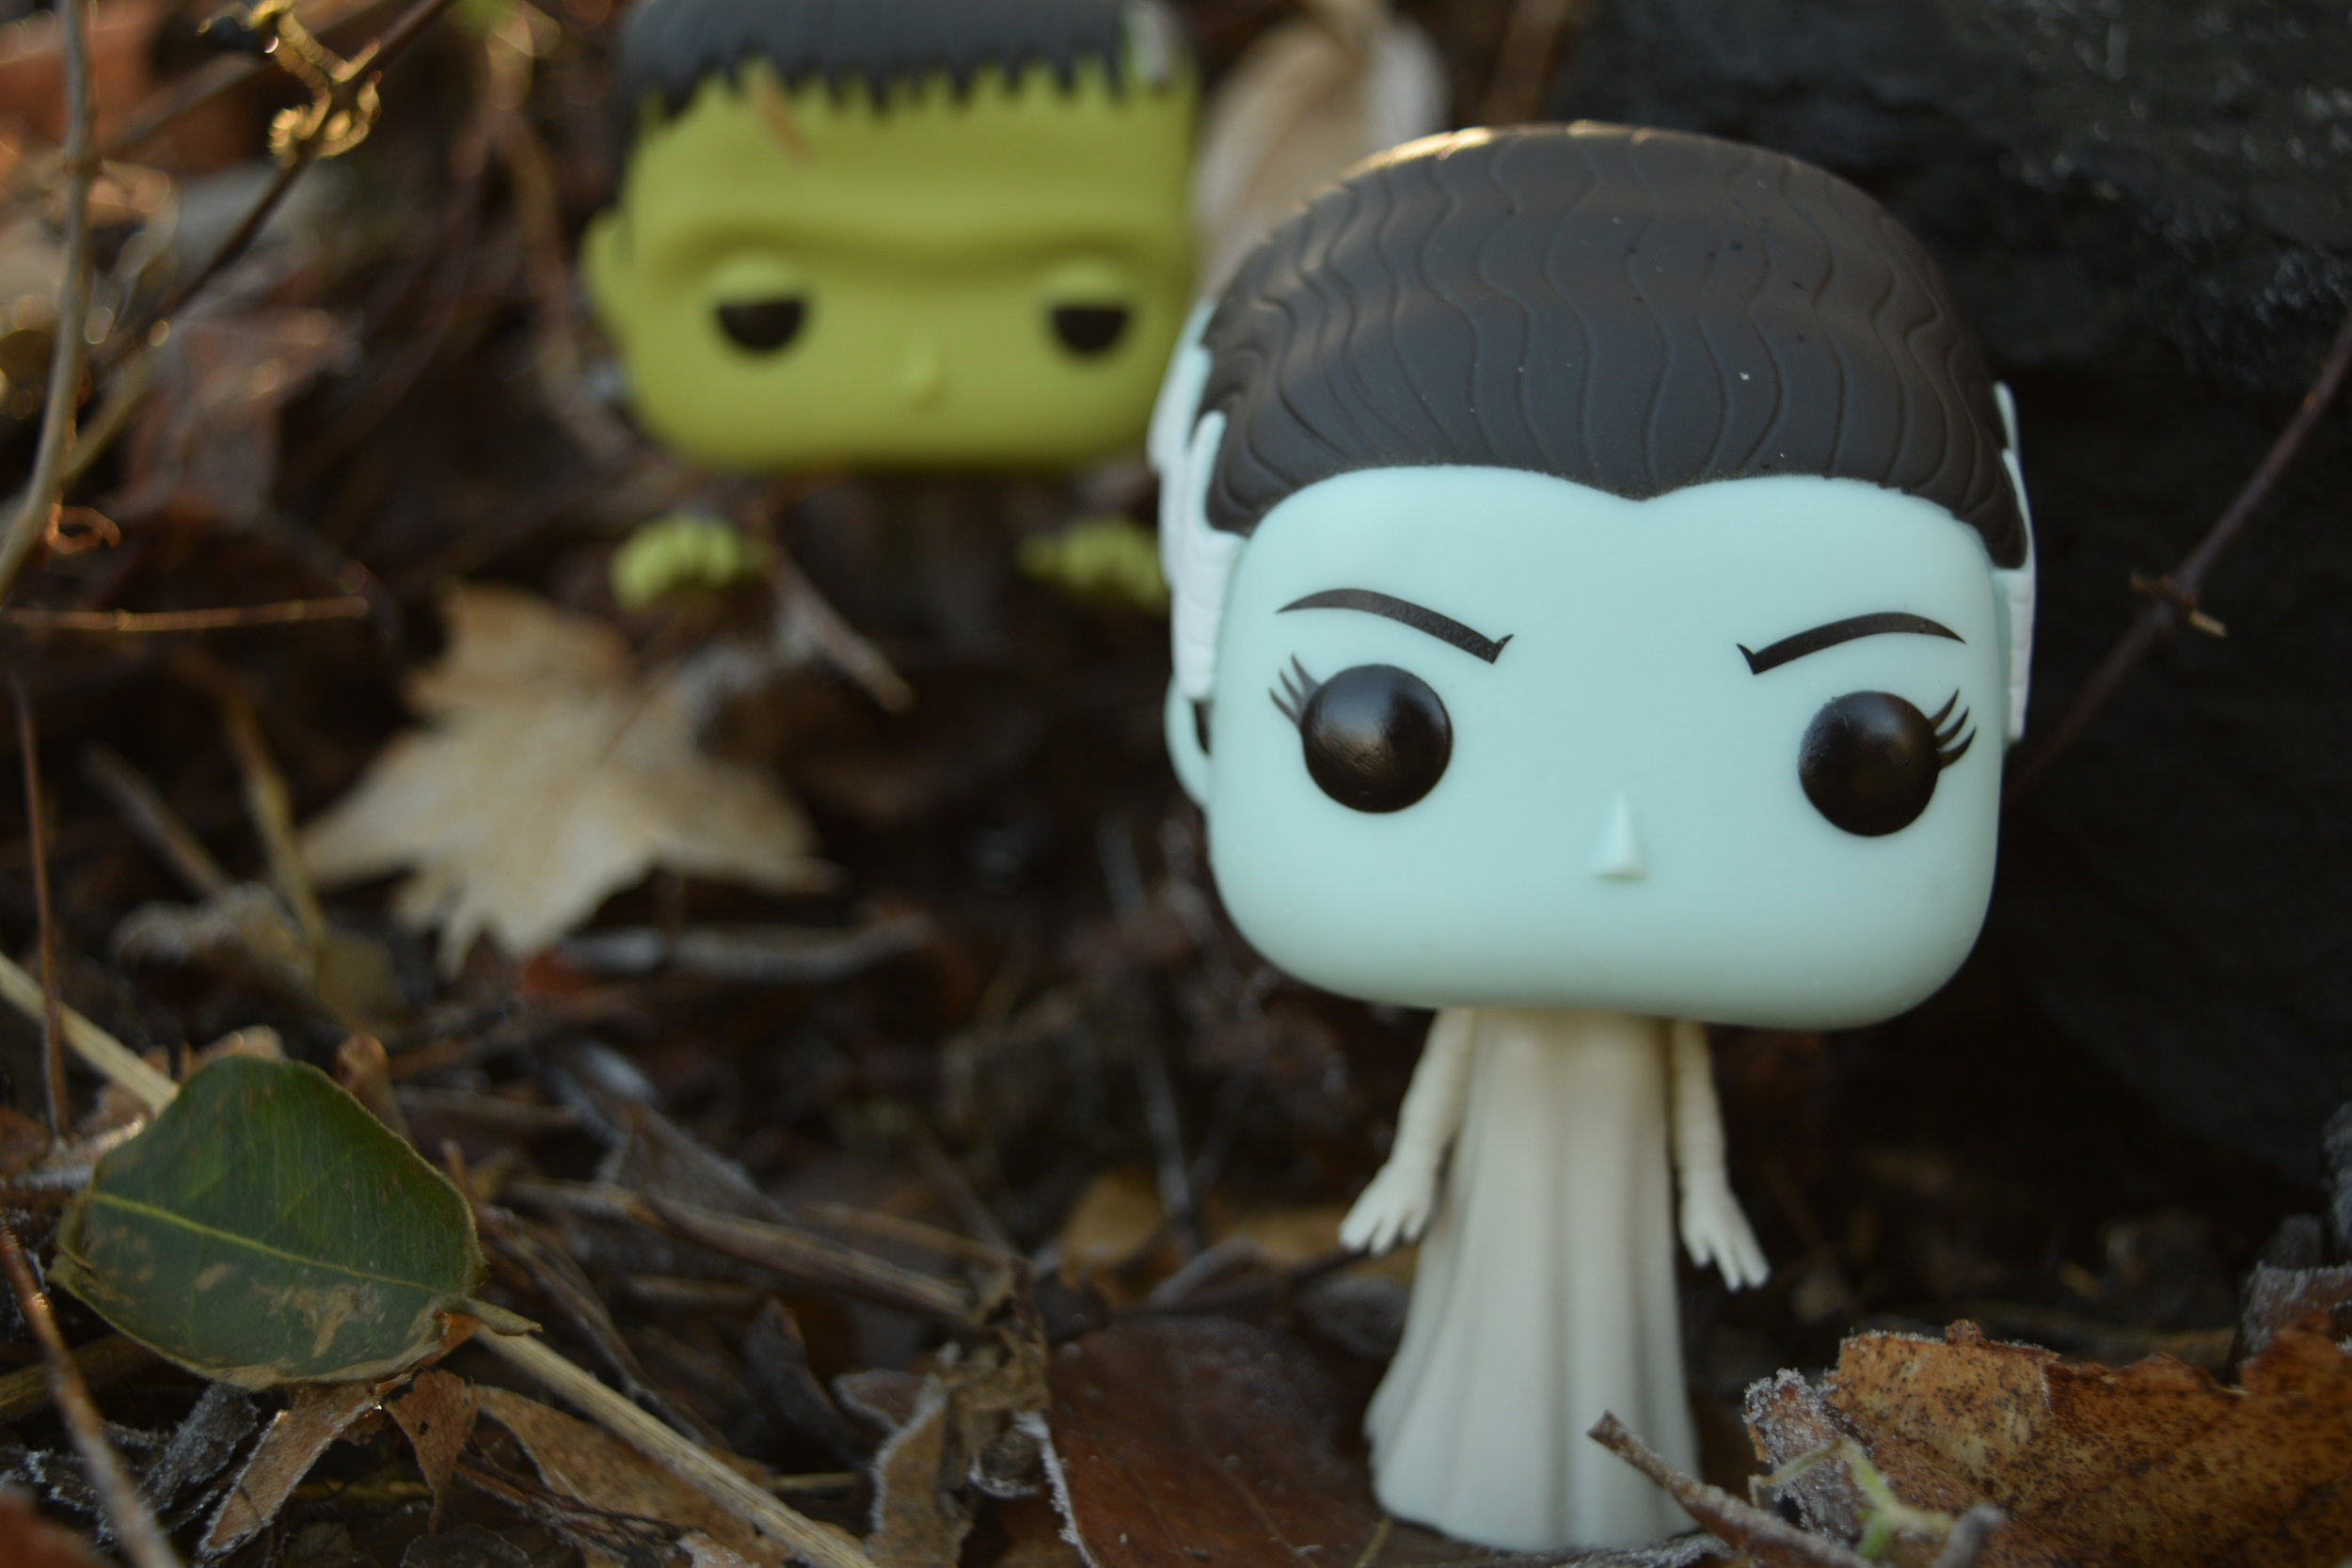 Frankenstein & Bride of Frankenstein Funko Pops